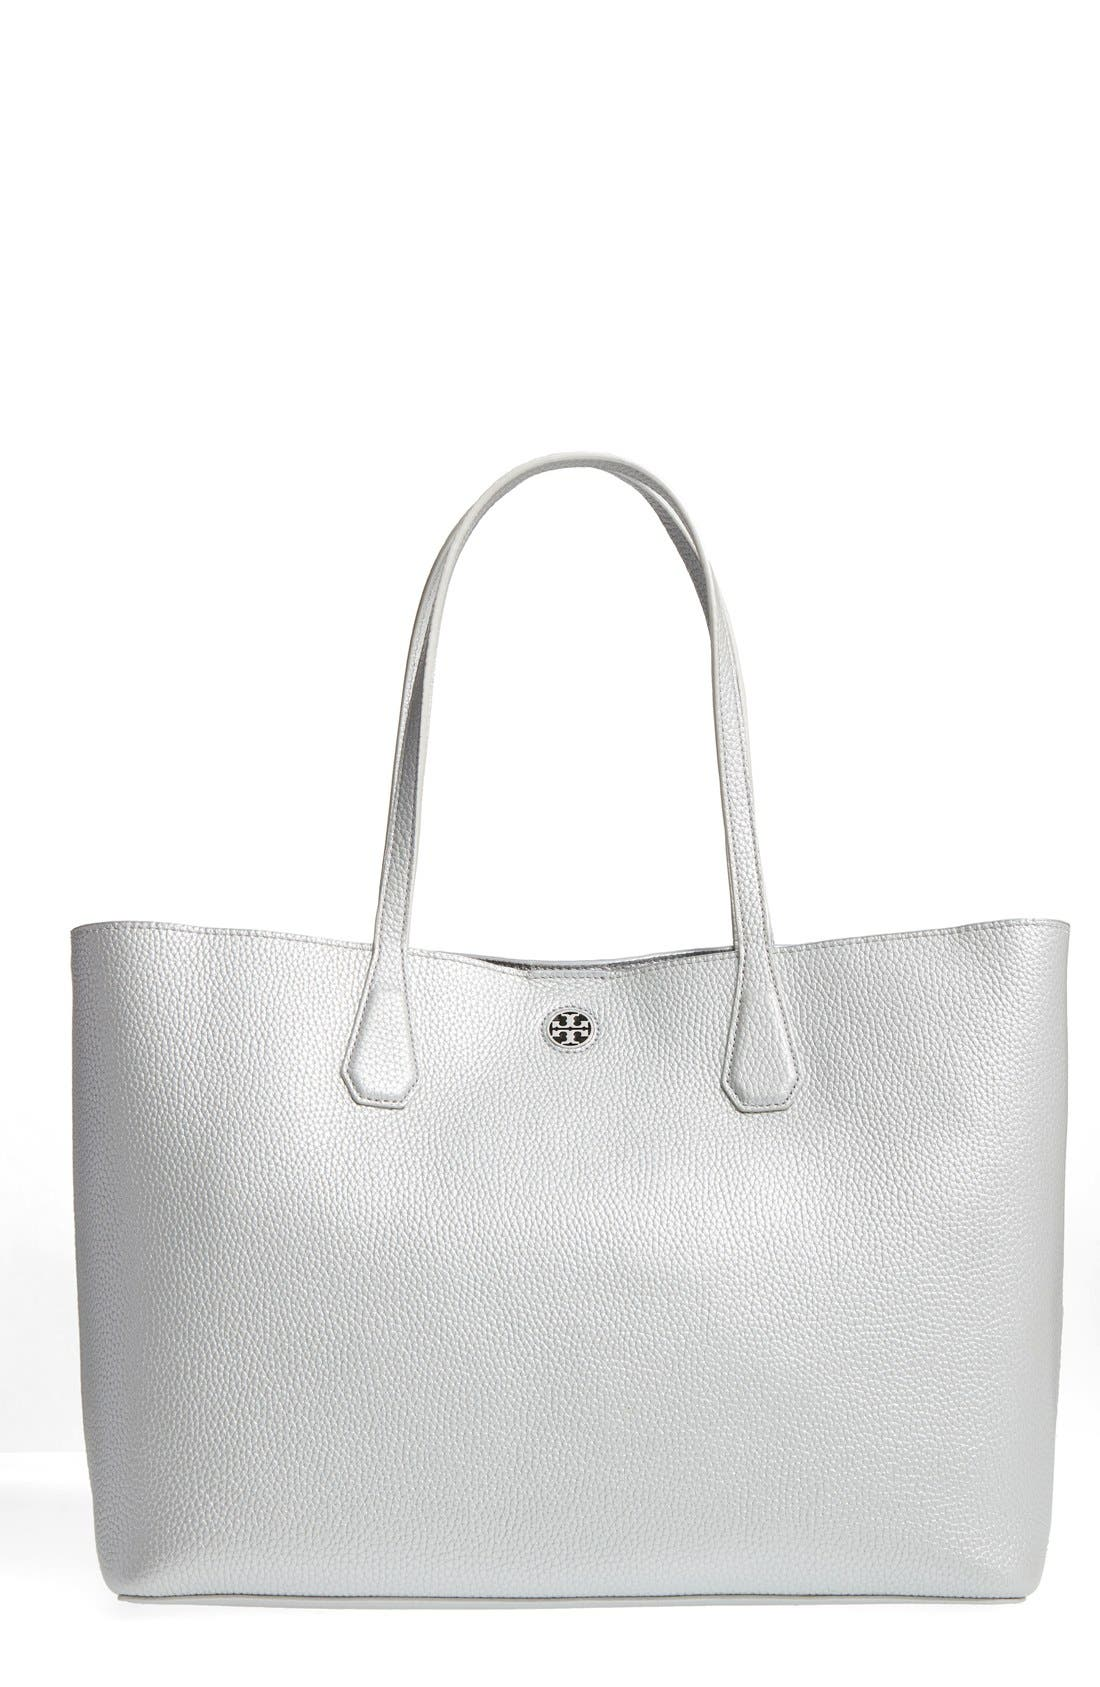 Main Image - Tory Burch Perry Leather Tote